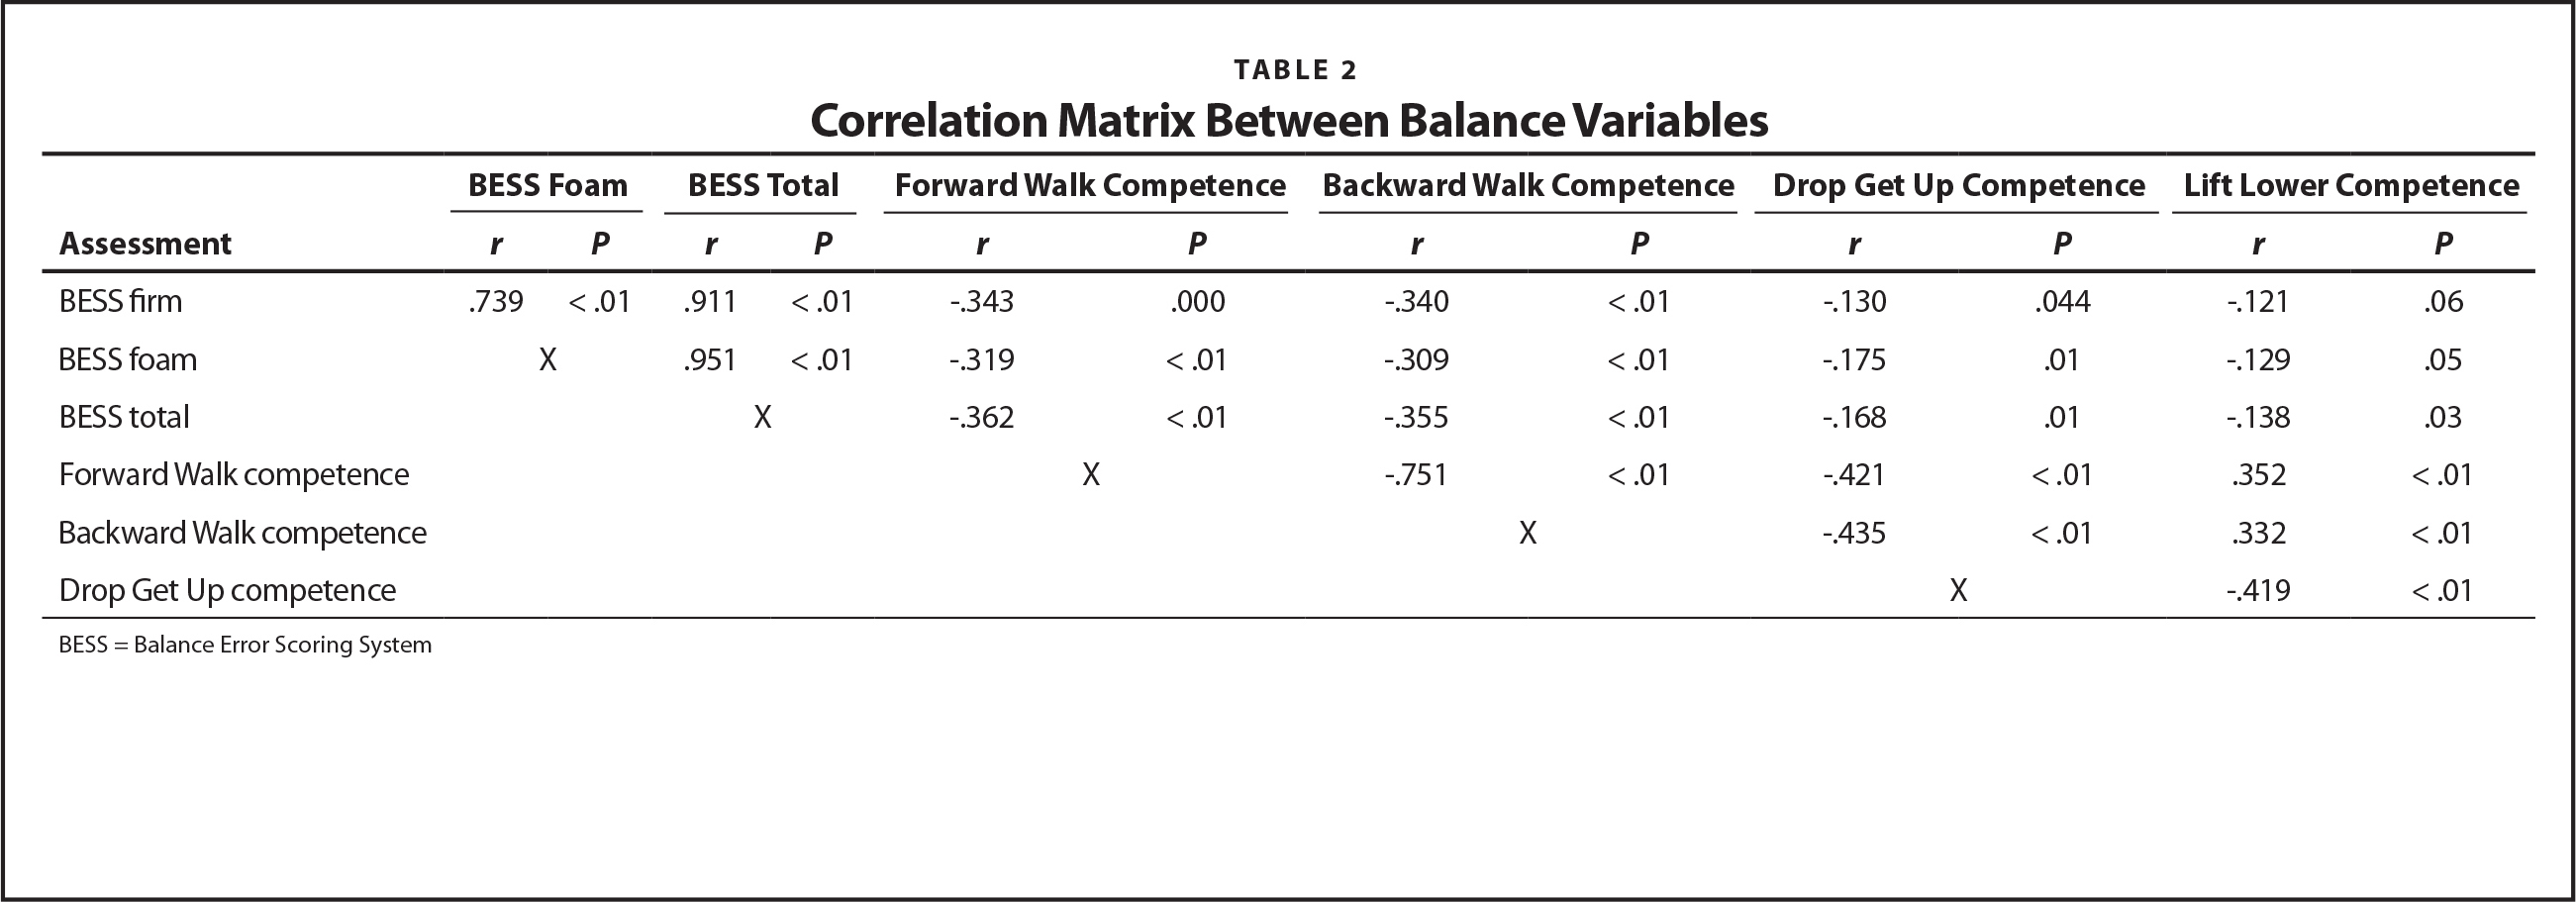 Correlation Matrix Between Balance Variables